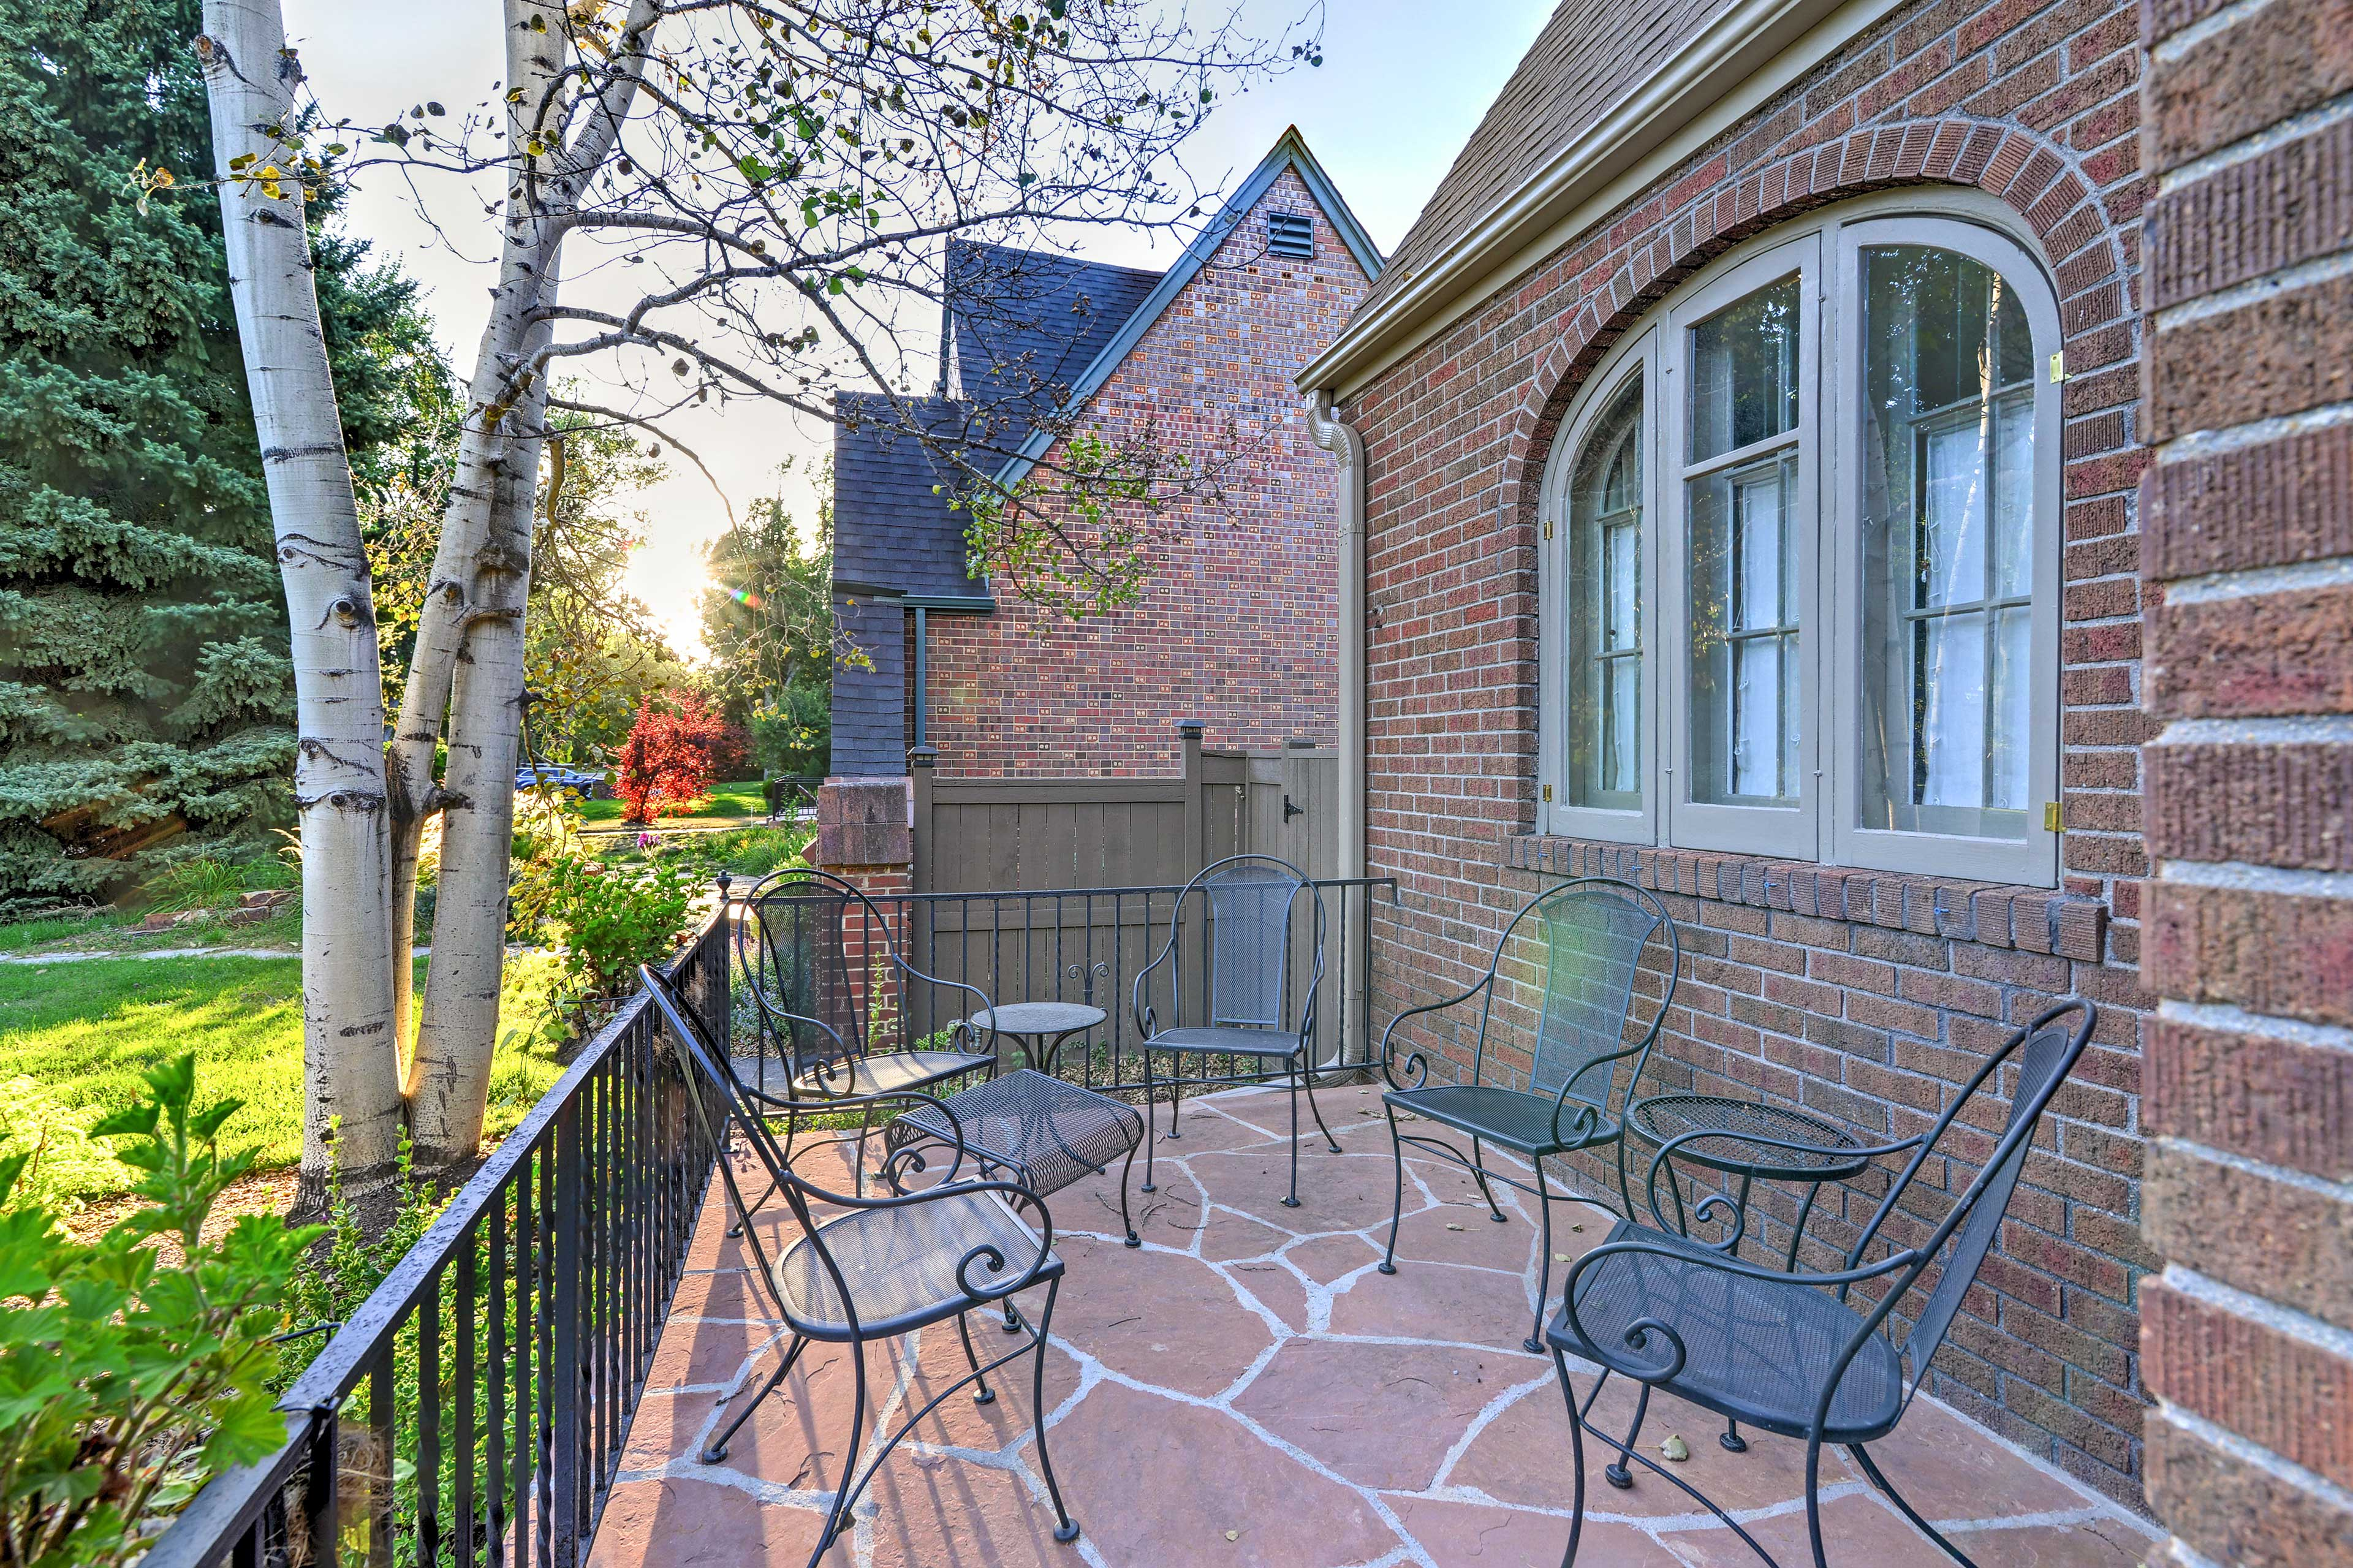 Step out onto the patio for fresh air and neighborhood views.